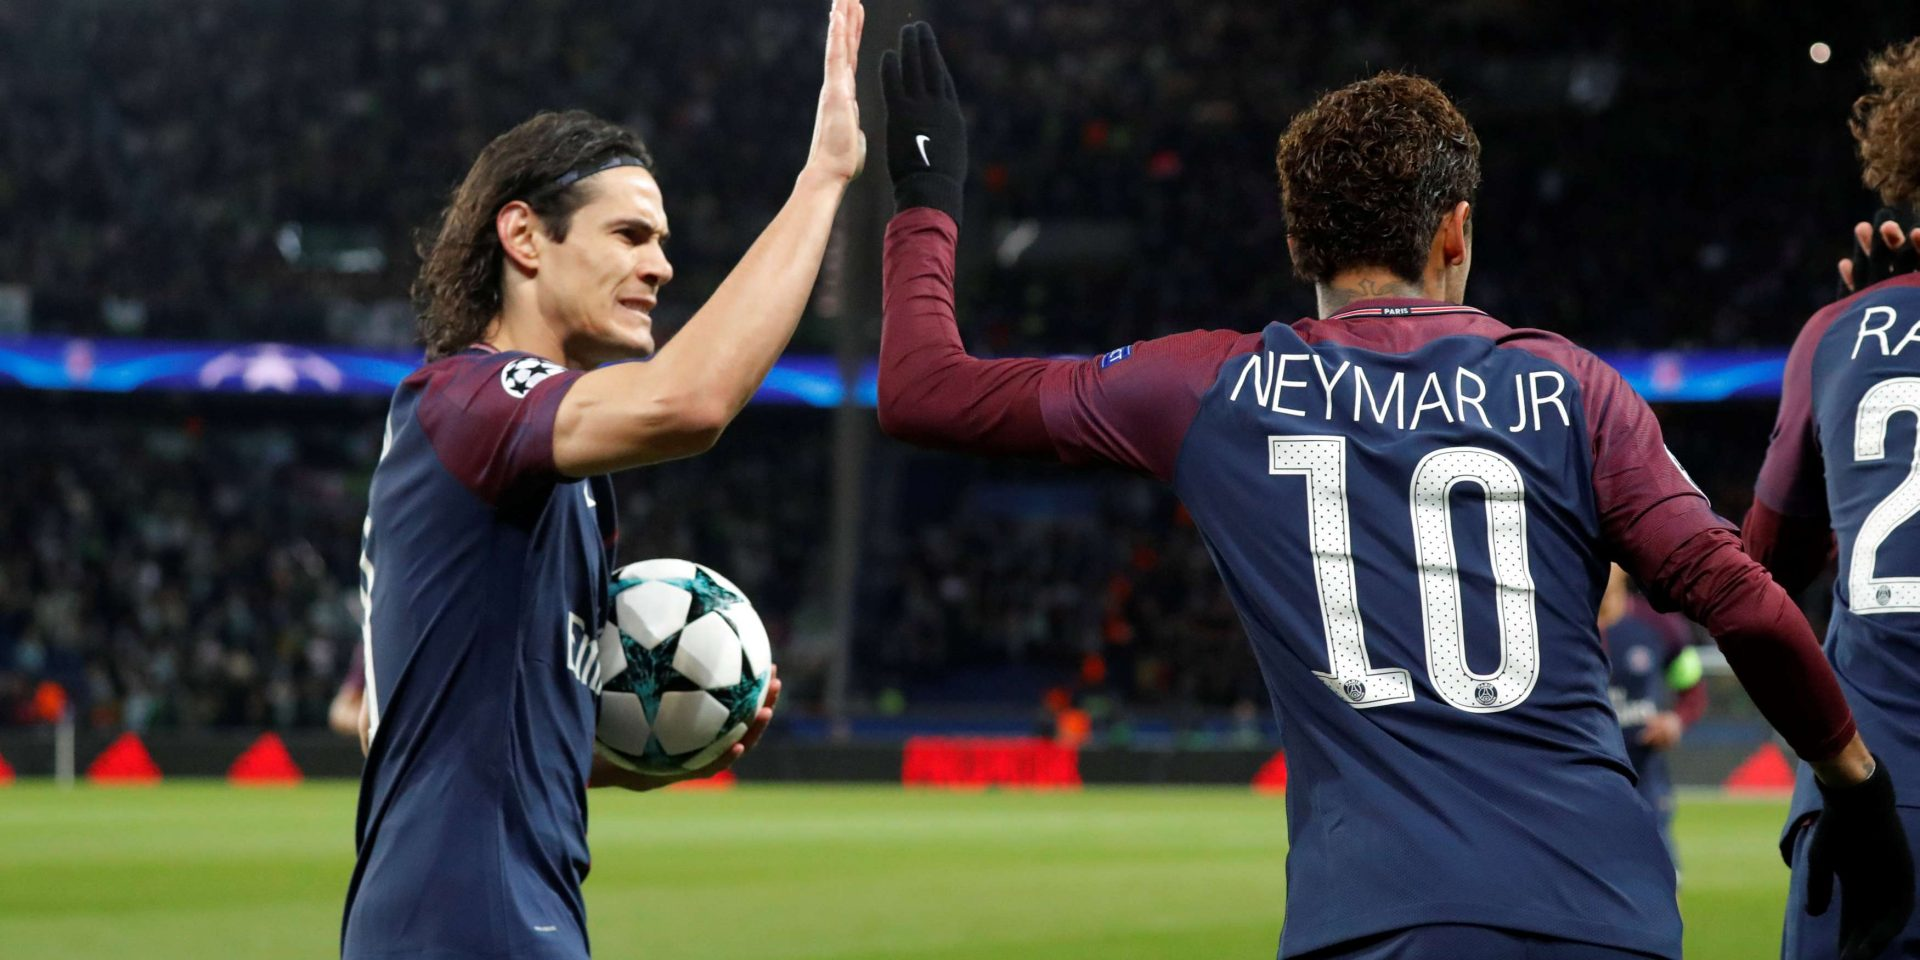 Soccer Football - Champions League - Paris St Germain vs Celtic - Parc des Princes, Paris, France - November 22, 2017   Paris Saint-Germain?s Neymar celebrates scoring their first goal with Edinson Cavani    REUTERS/Charles Platiau